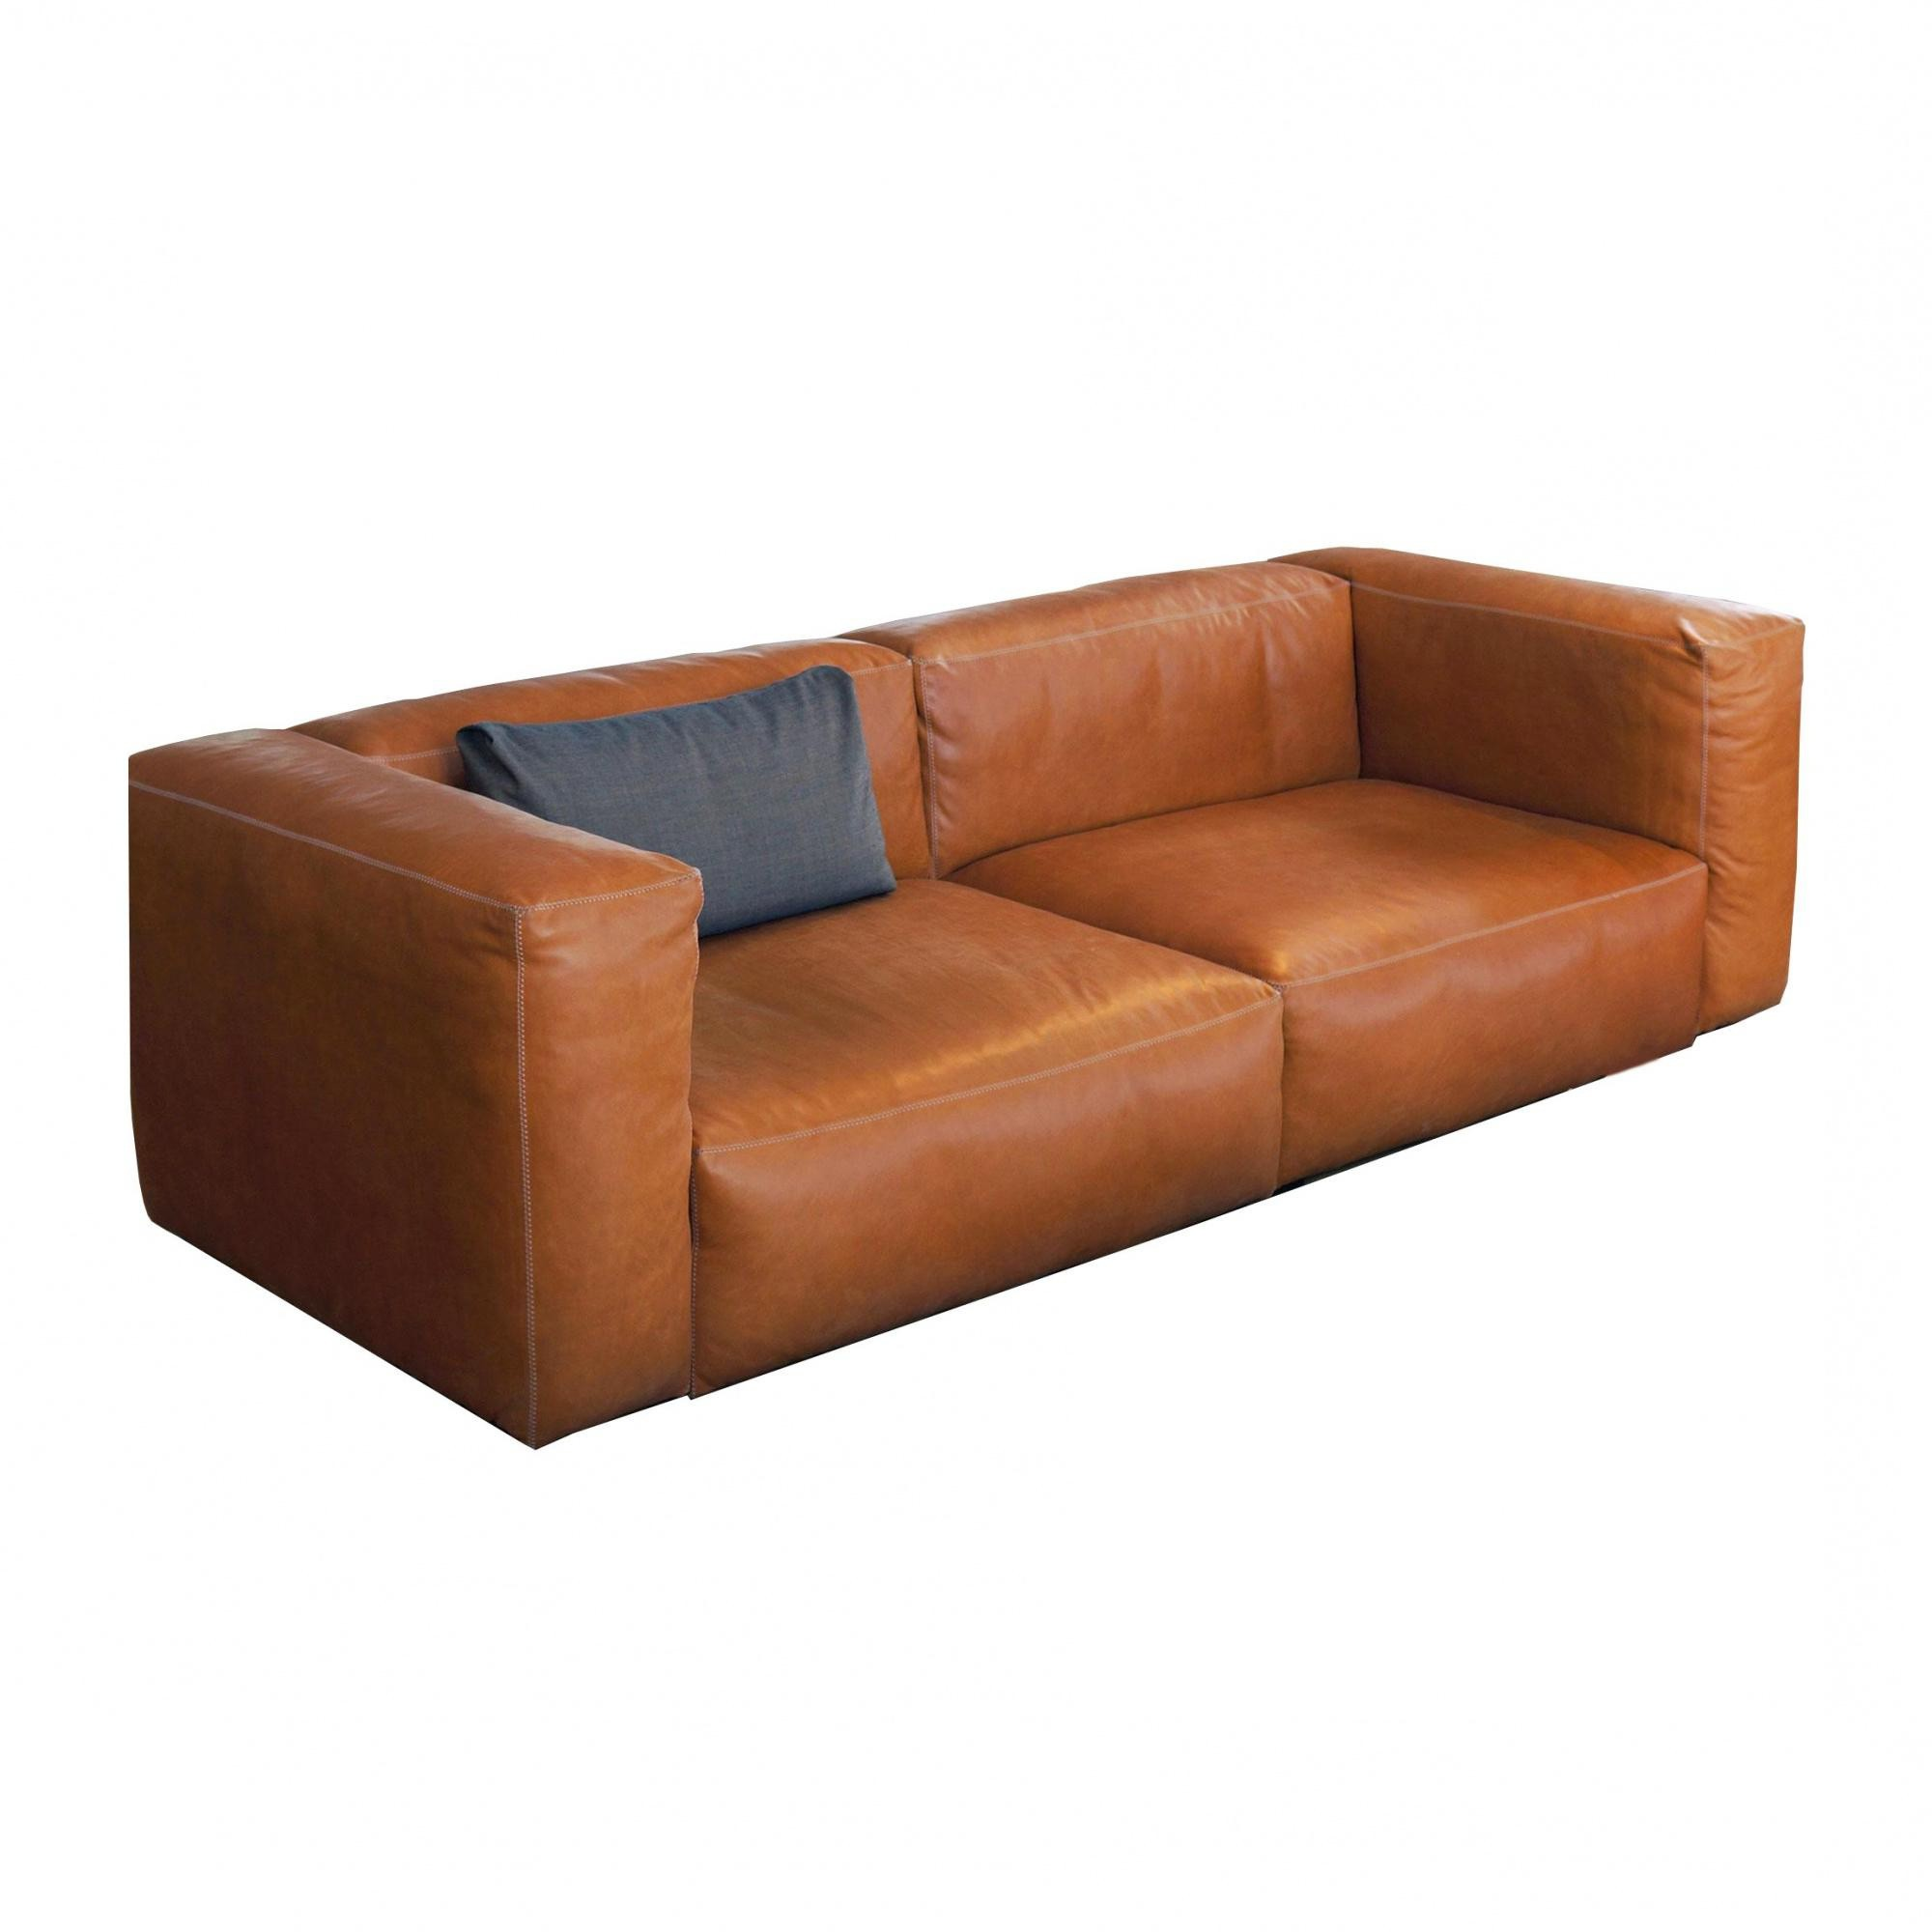 Mags Soft 2 5 Seater Sofa Leather Idc